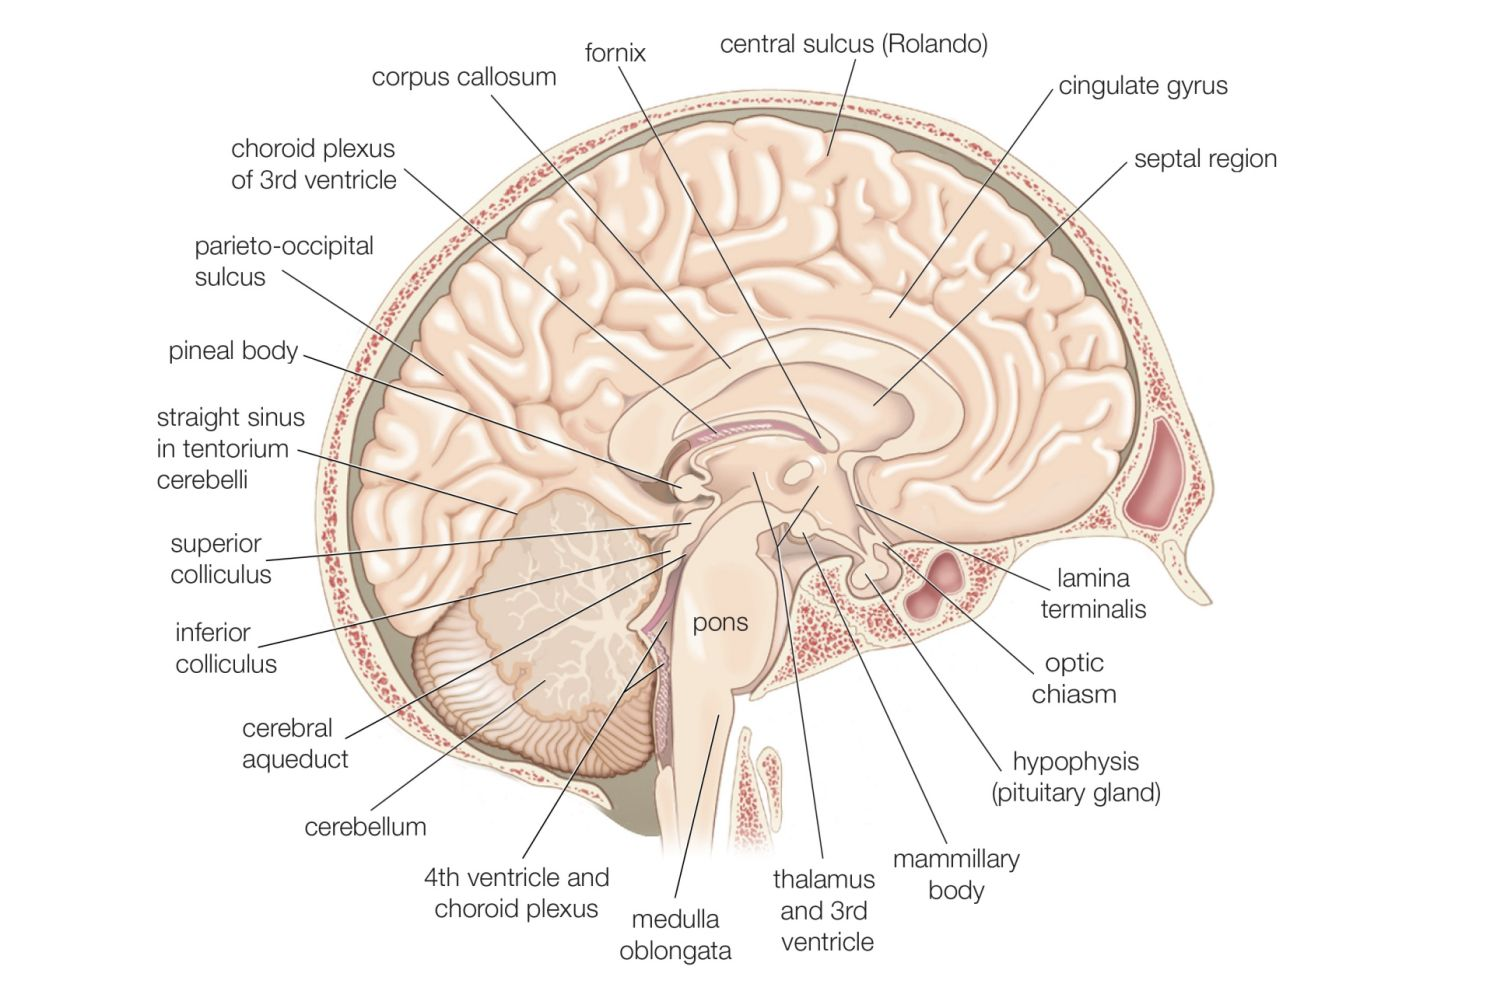 Divisions Of The Brain Forebrain Midbrain Hindbrain